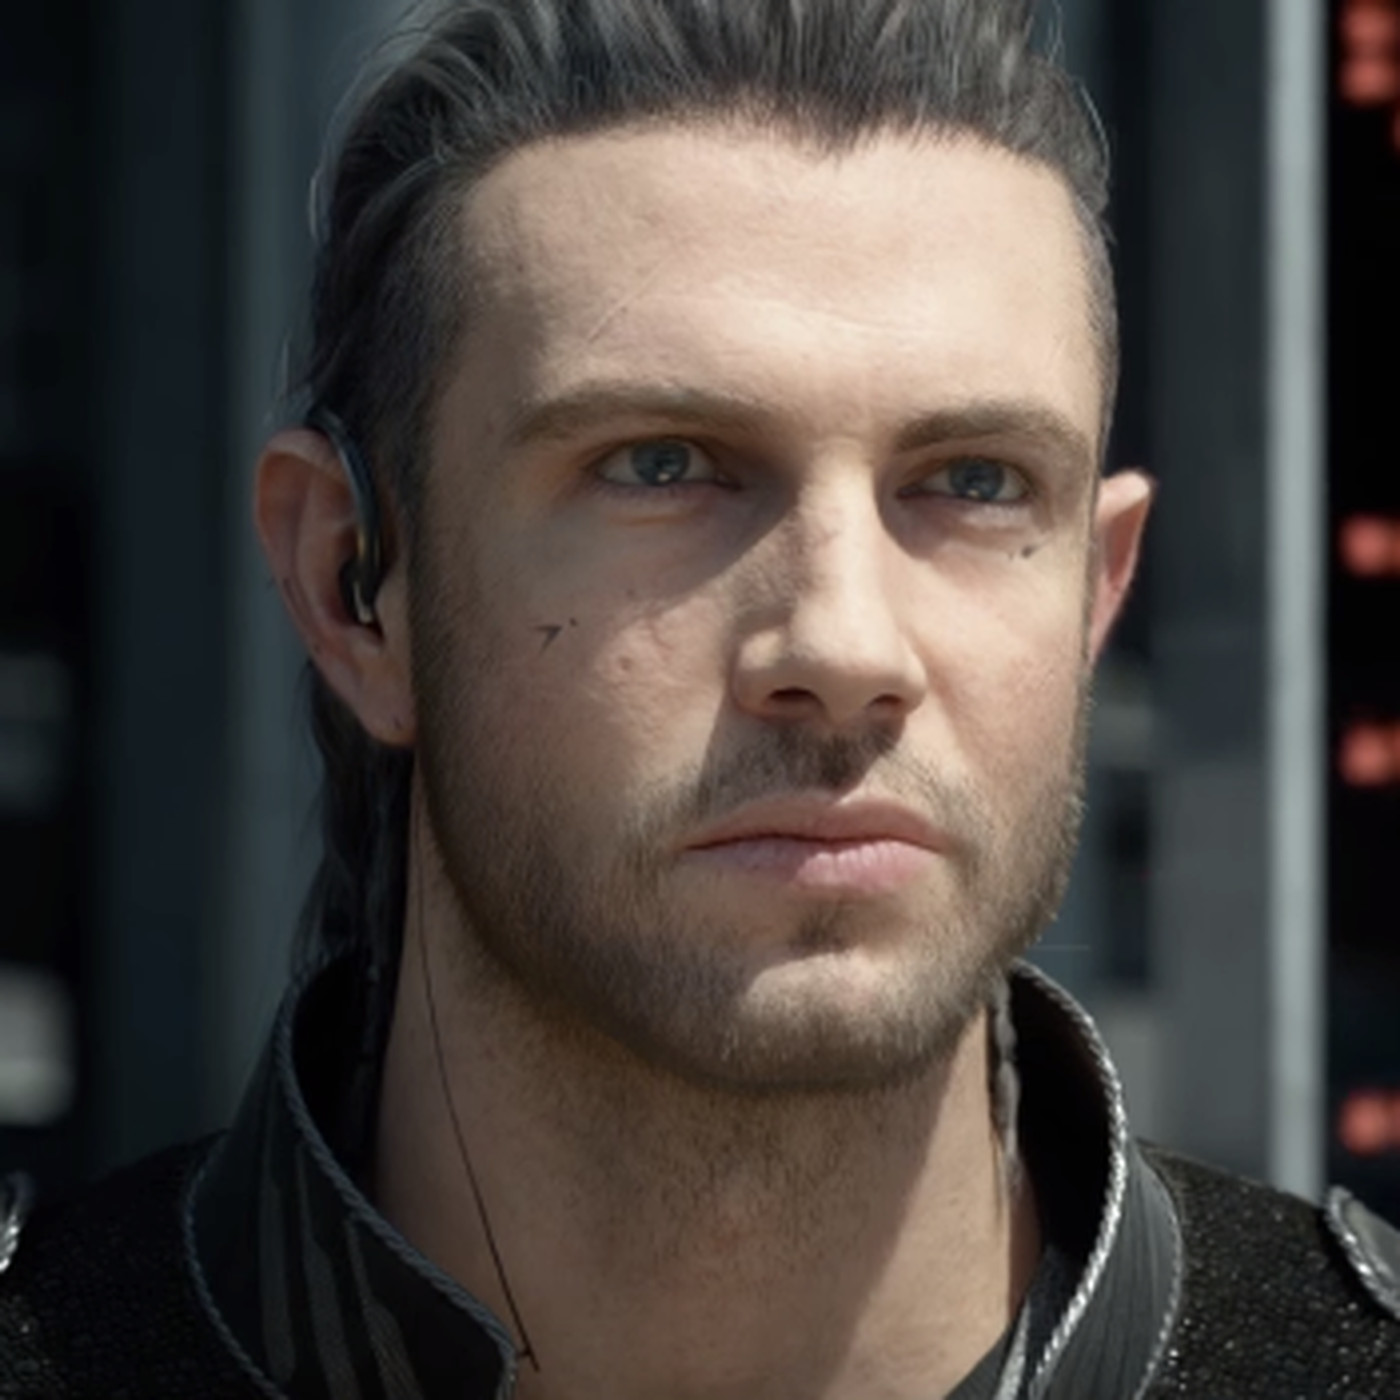 The Final Fantasy Xv Movie Is A Confusing Beautiful Mess The Verge